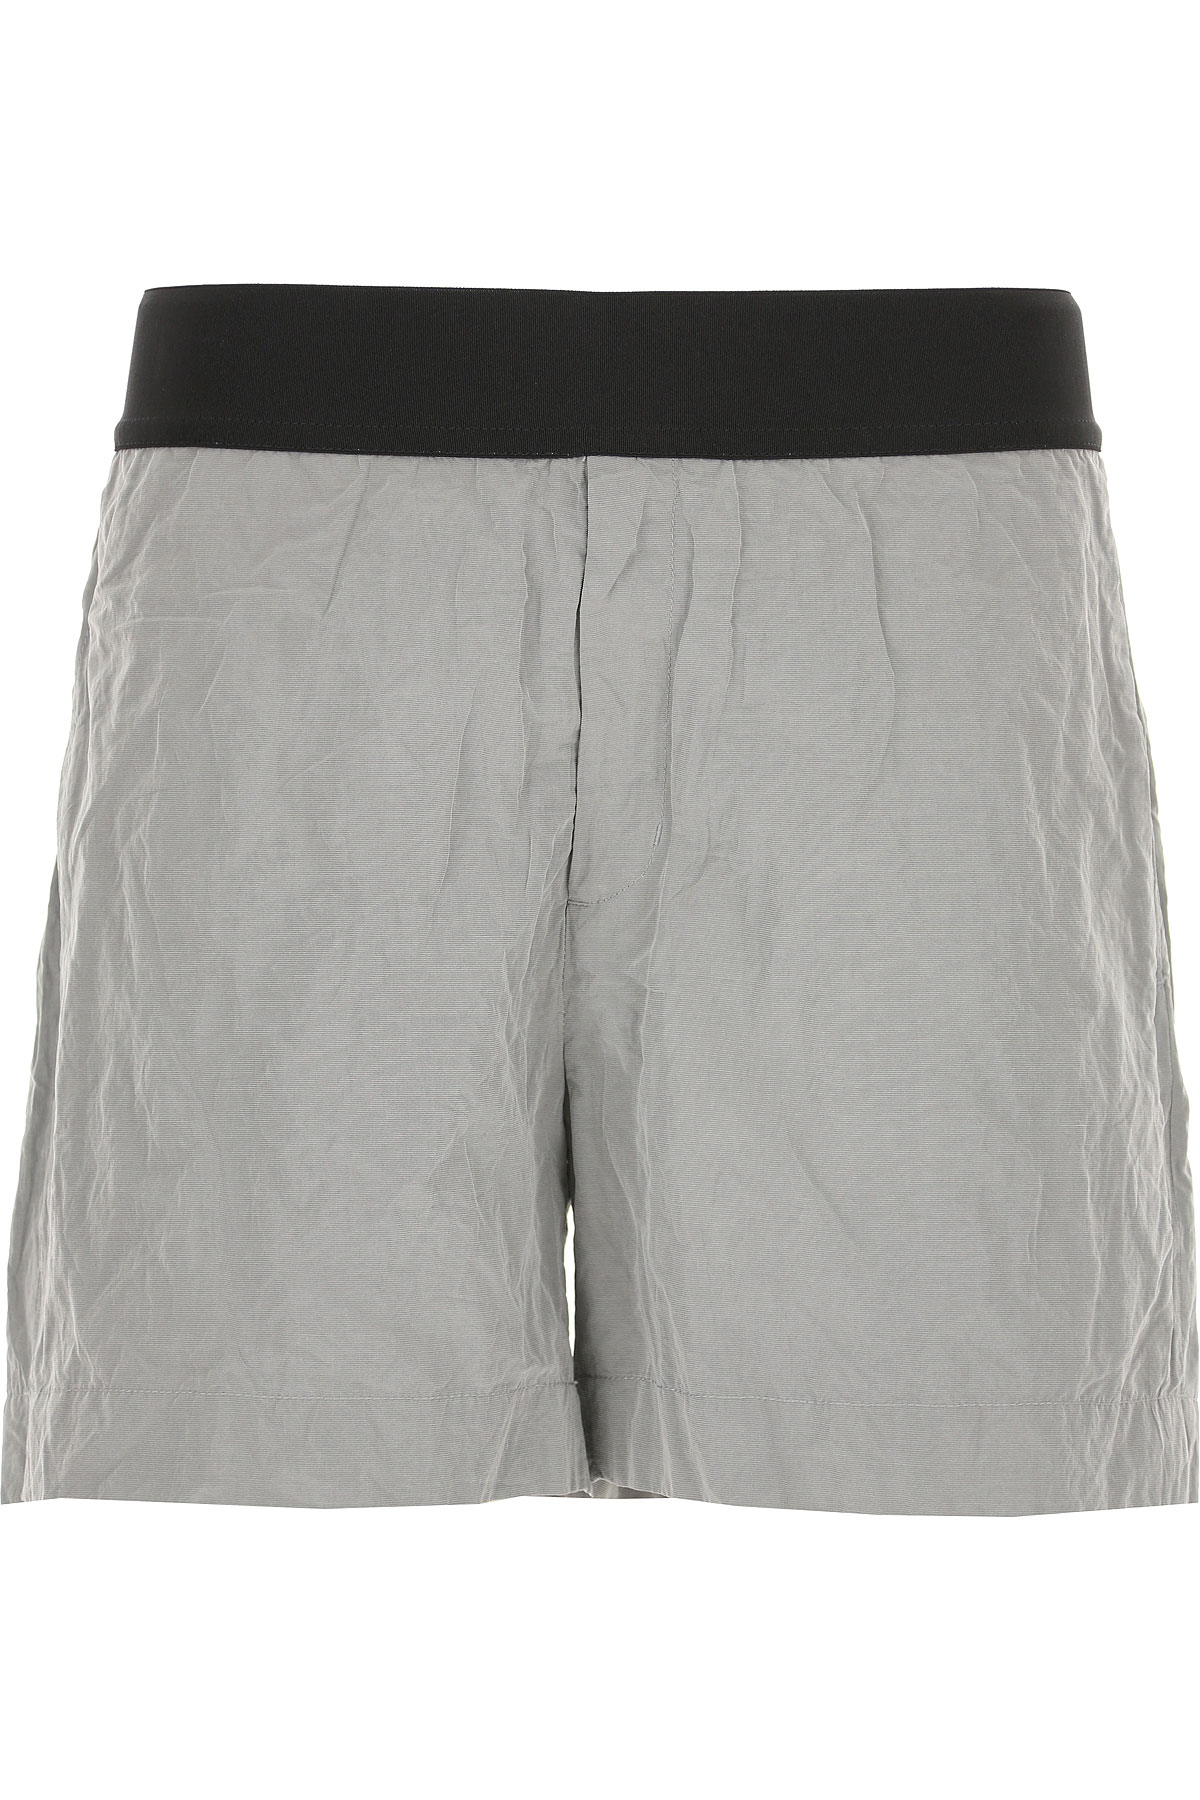 ALYX Shorts for Men On Sale in Outlet, Grey, polyester, 2019, M S